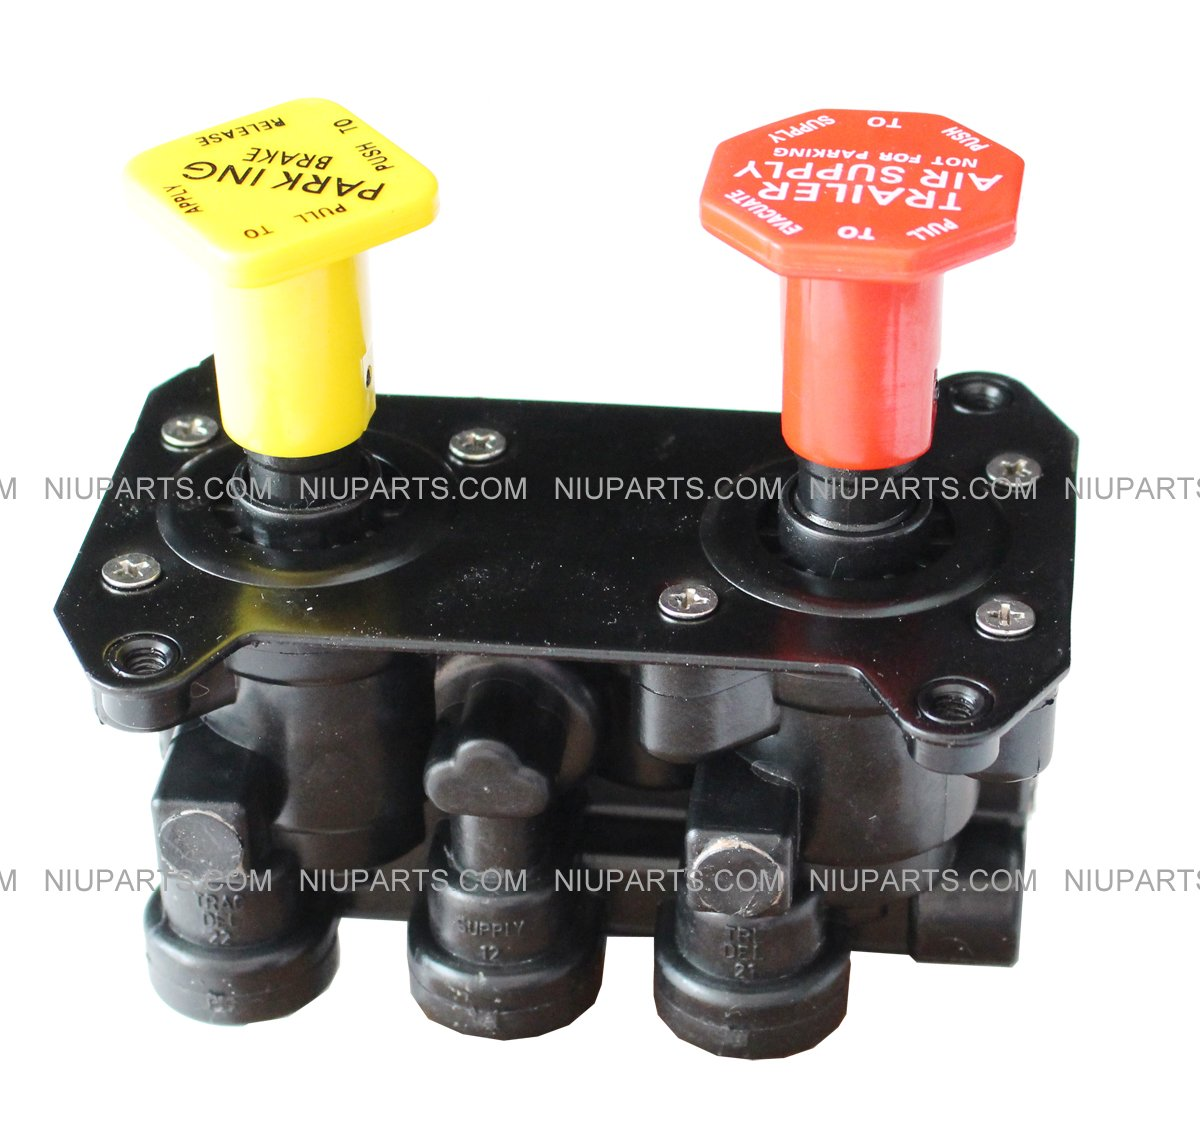 MV-3 MV3 Dash Control Brake Valve 800516 065157 by NIUPARTS